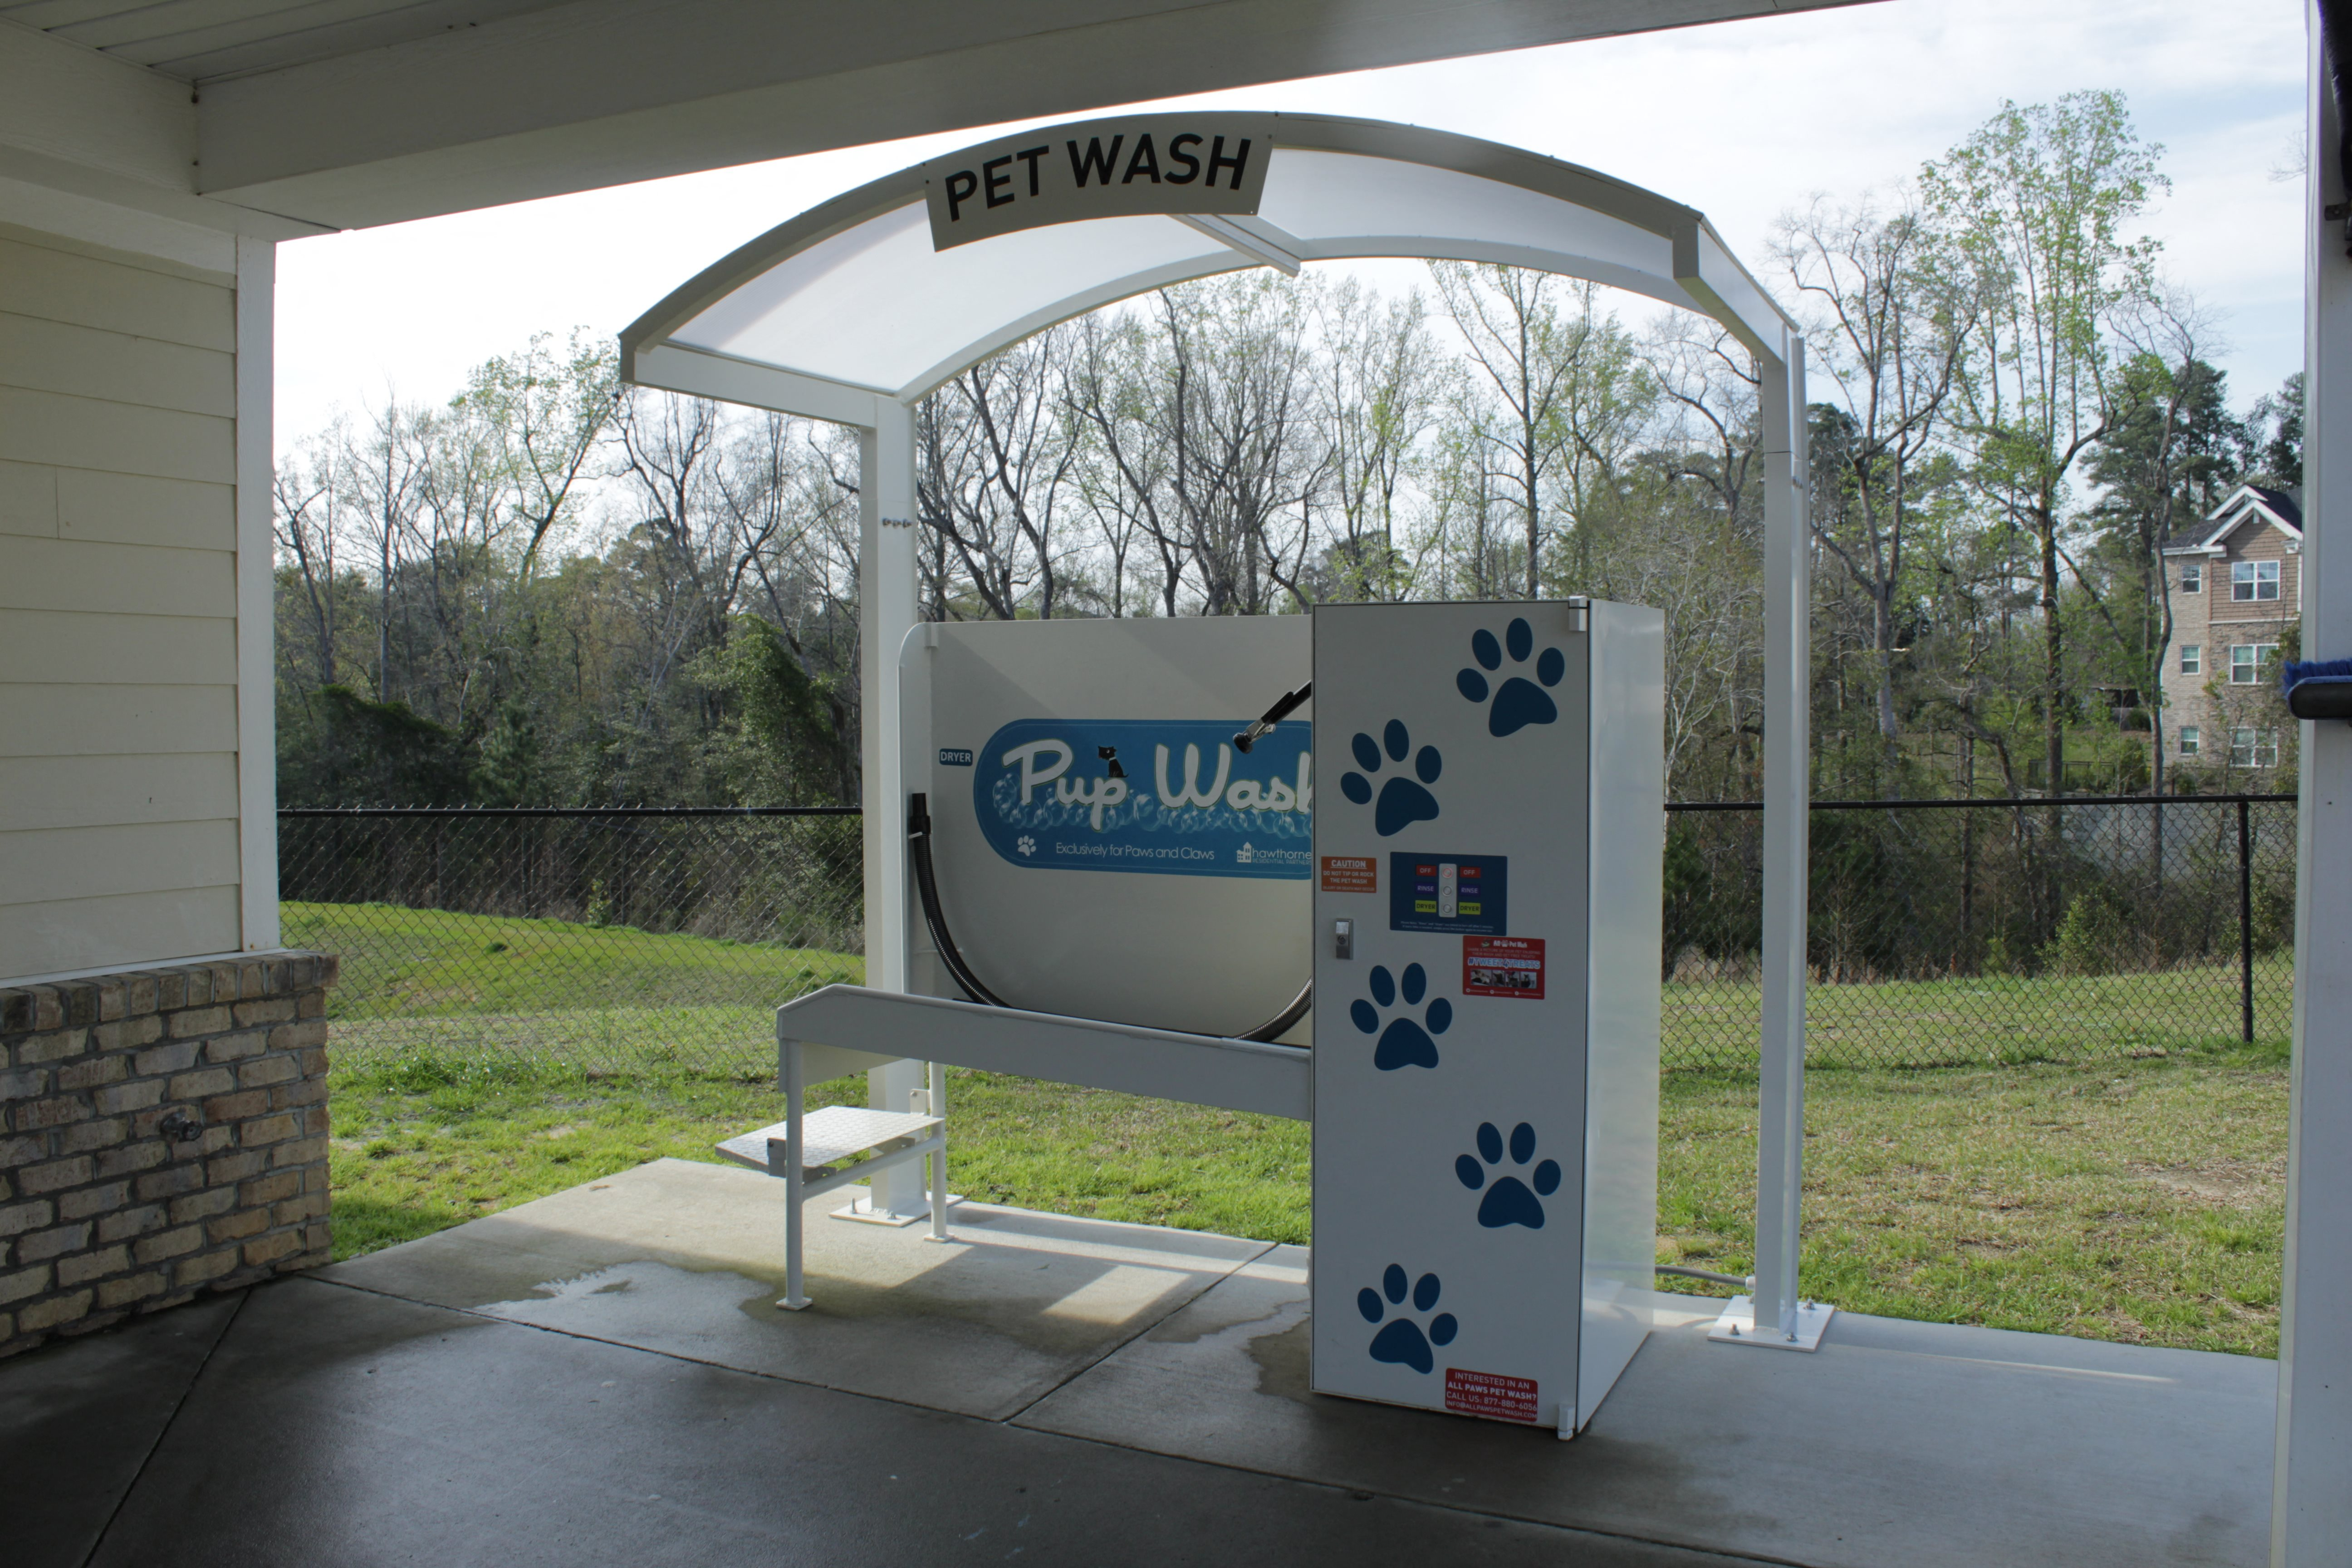 West End at Fayetteville Pup Wash